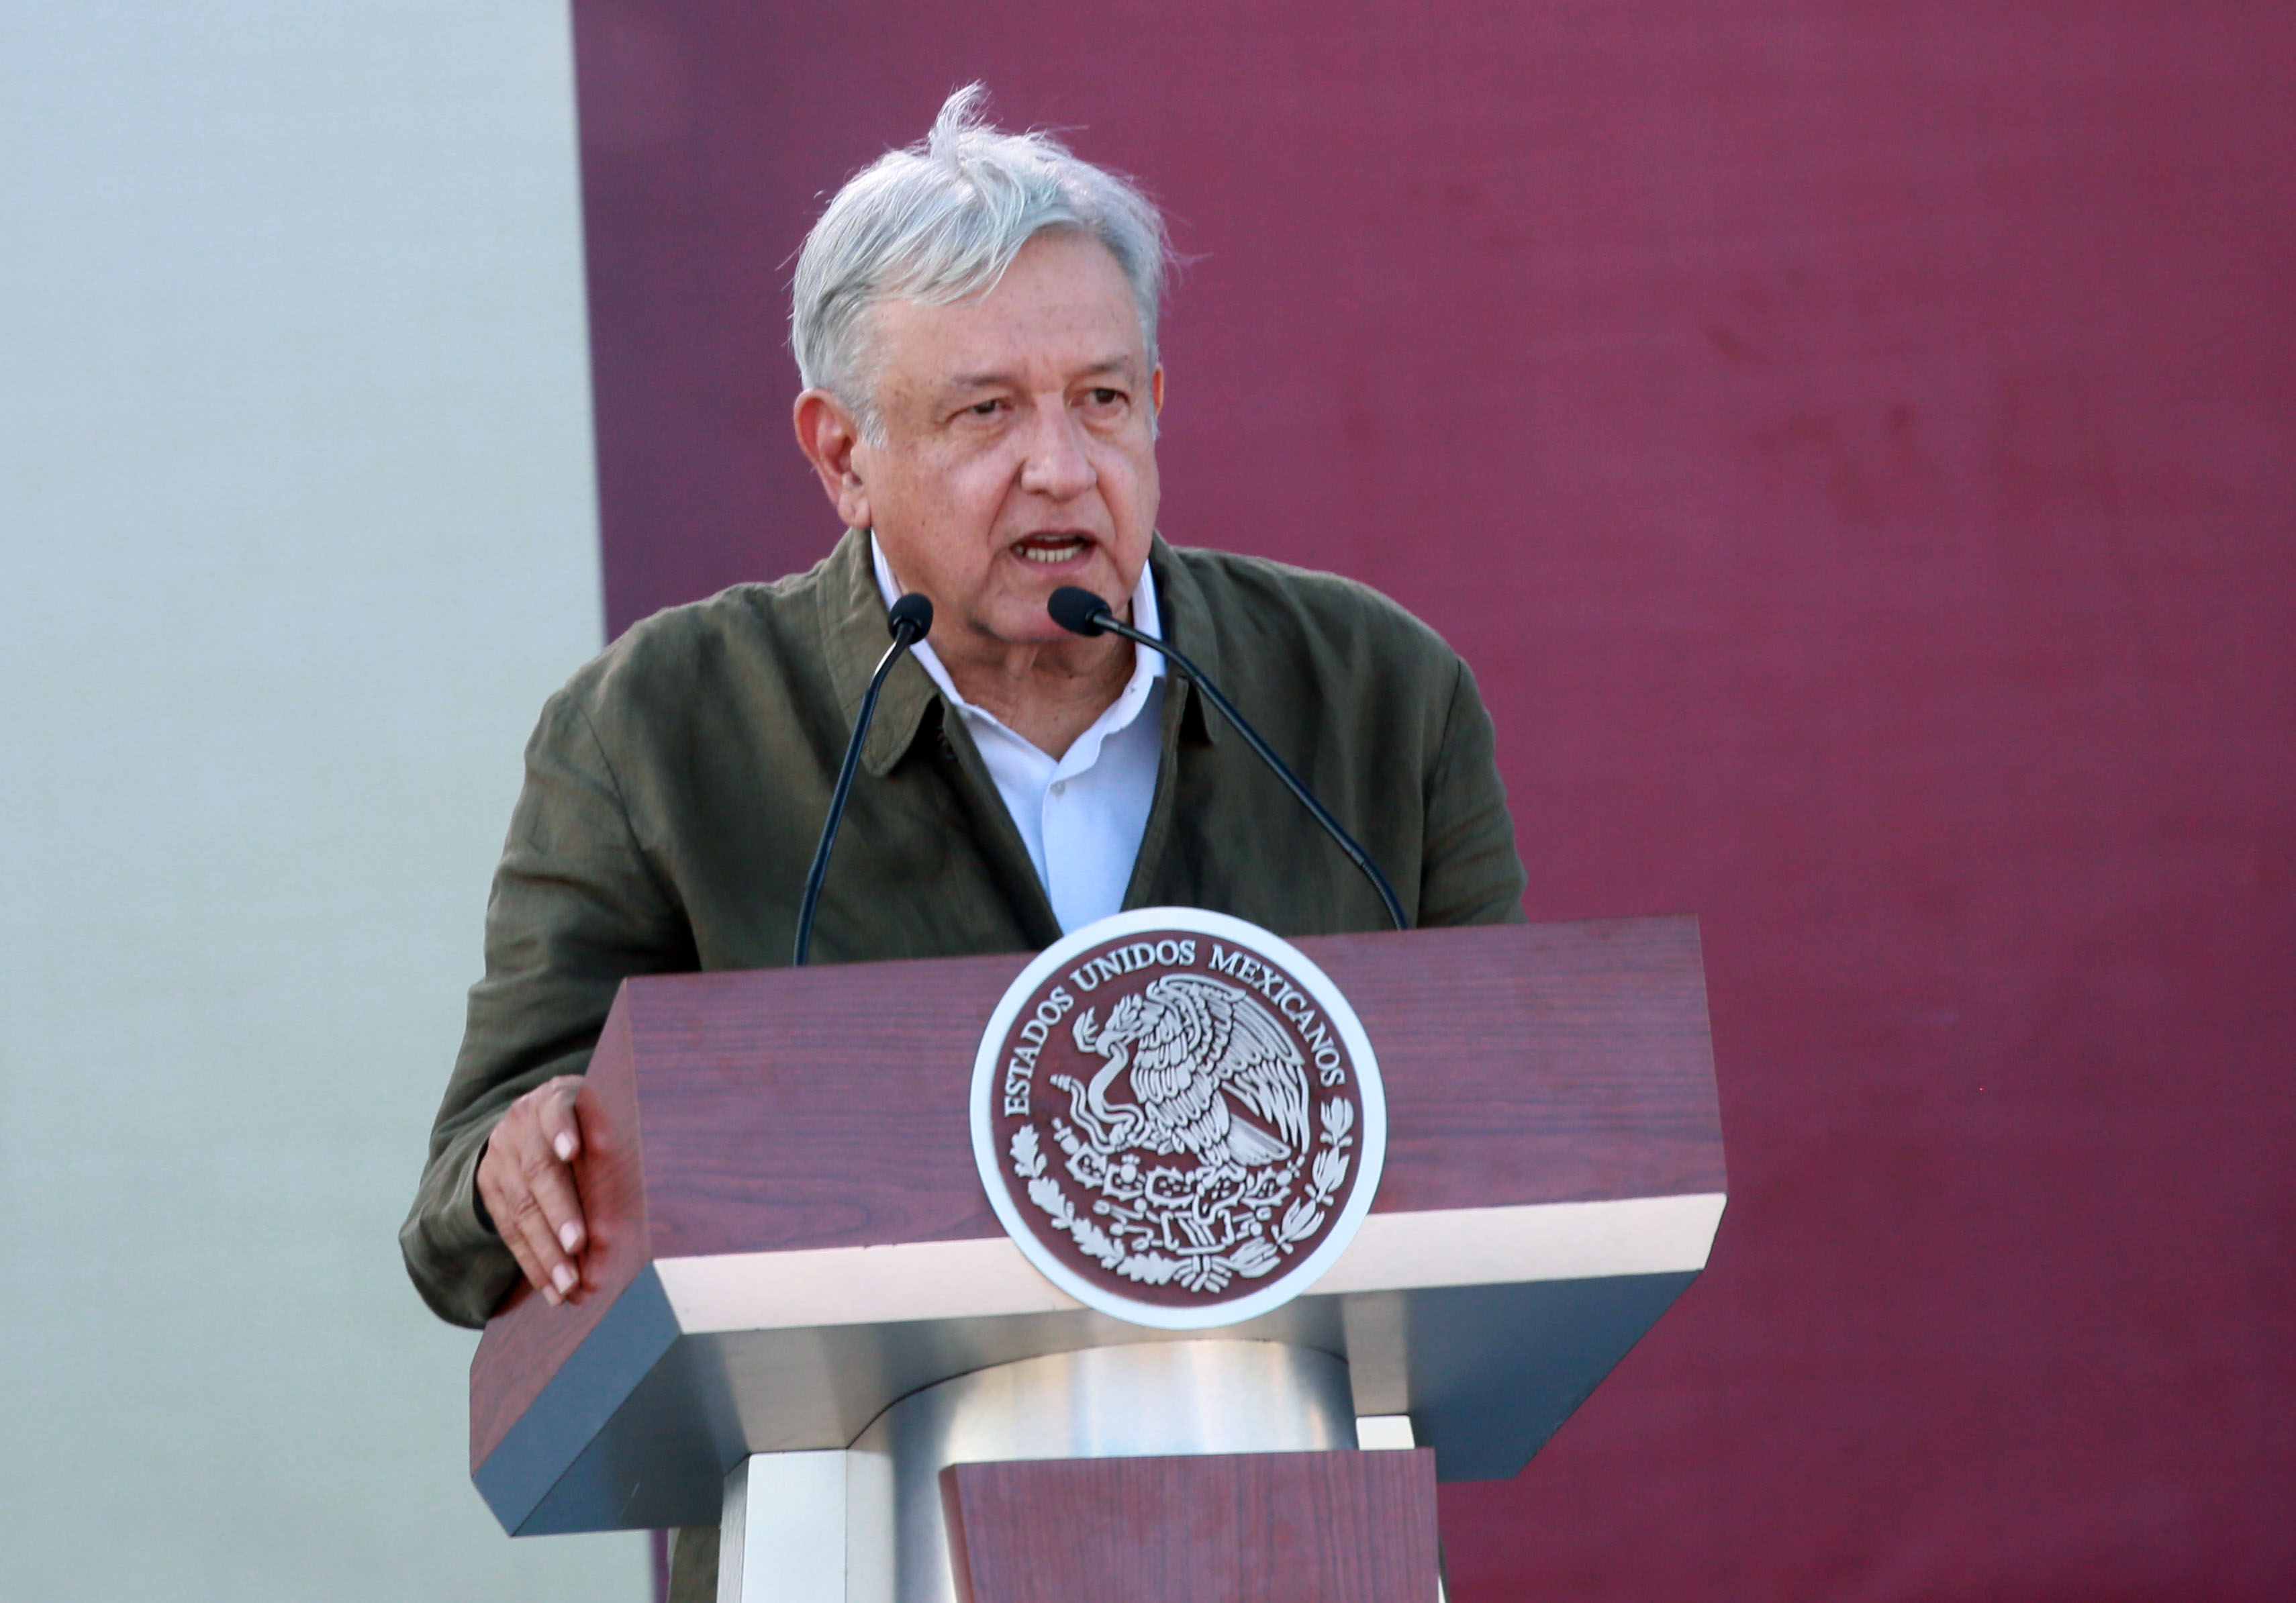 Mexican President Andres Manuel Lopez Obrador speaks during a unity rally on June 8, 2019. Lopez Obrador committed to defending Mexicos dignity amid a looming threat from U.S. President Donald Trump (Sandy Huffaker/Getty Images)